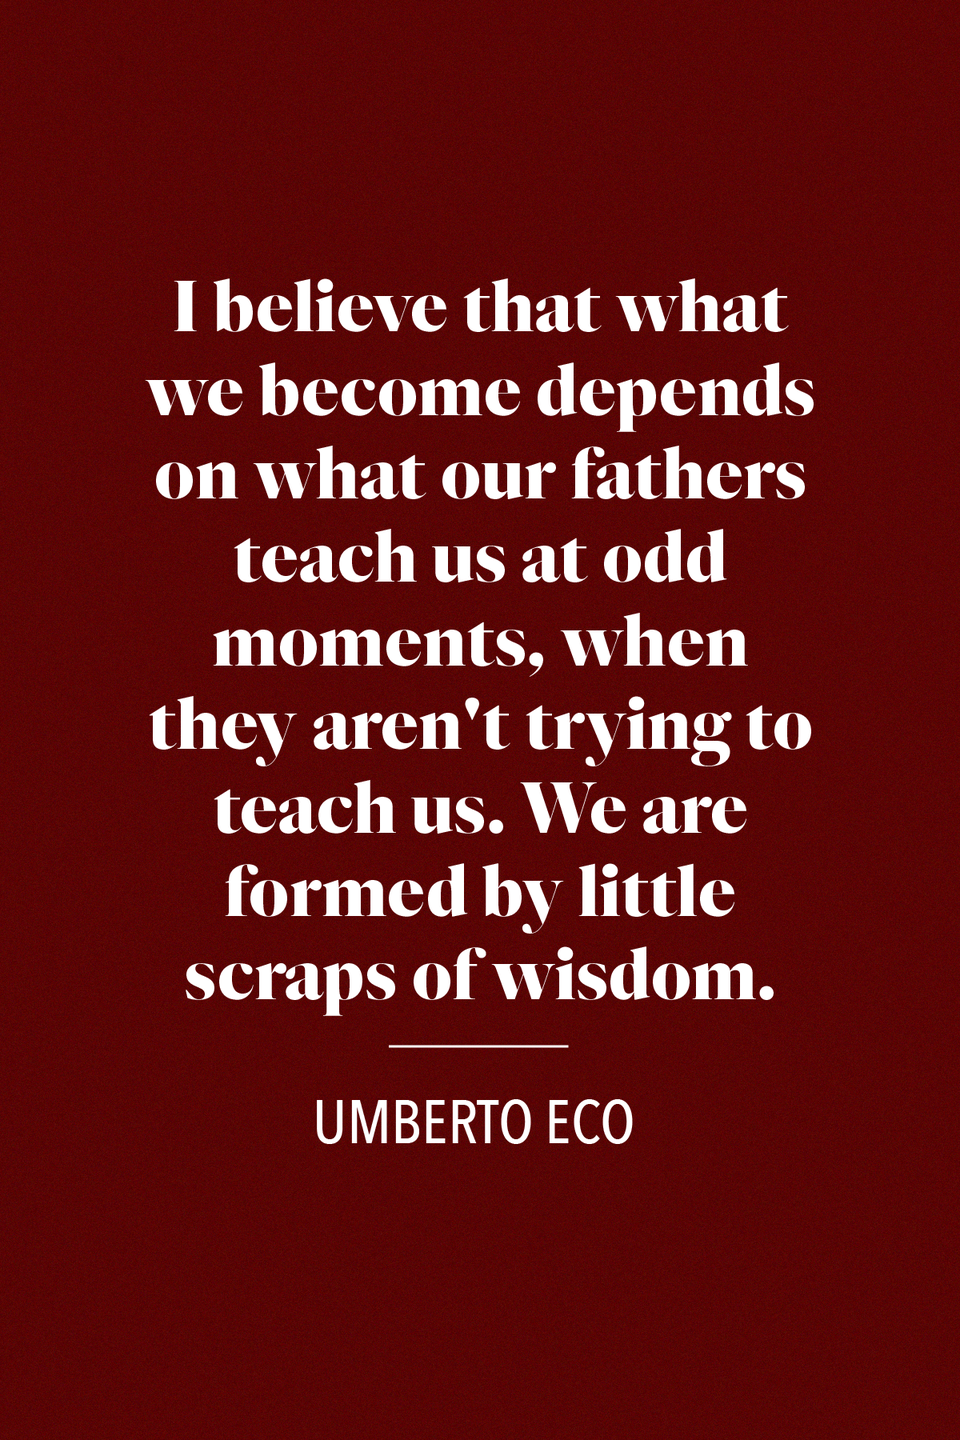 "<p>""I believe that what we become depends on what our fathers teach us at odd moments, when they aren't trying to teach us. We are formed by little scraps of wisdom,"" Italian writer and philosopher Umberto Eco said in his novel <em><a href=""https://www.amazon.com/Foucaults-Pendulum-Umberto-Eco/dp/015603297X?tag=syn-yahoo-20&ascsubtag=%5Bartid%7C10072.g.32909234%5Bsrc%7Cyahoo-us"" rel=""nofollow noopener"" target=""_blank"" data-ylk=""slk:Foucault's Pendulum"" class=""link rapid-noclick-resp"">Foucault's Pendulum</a>.</em></p>"